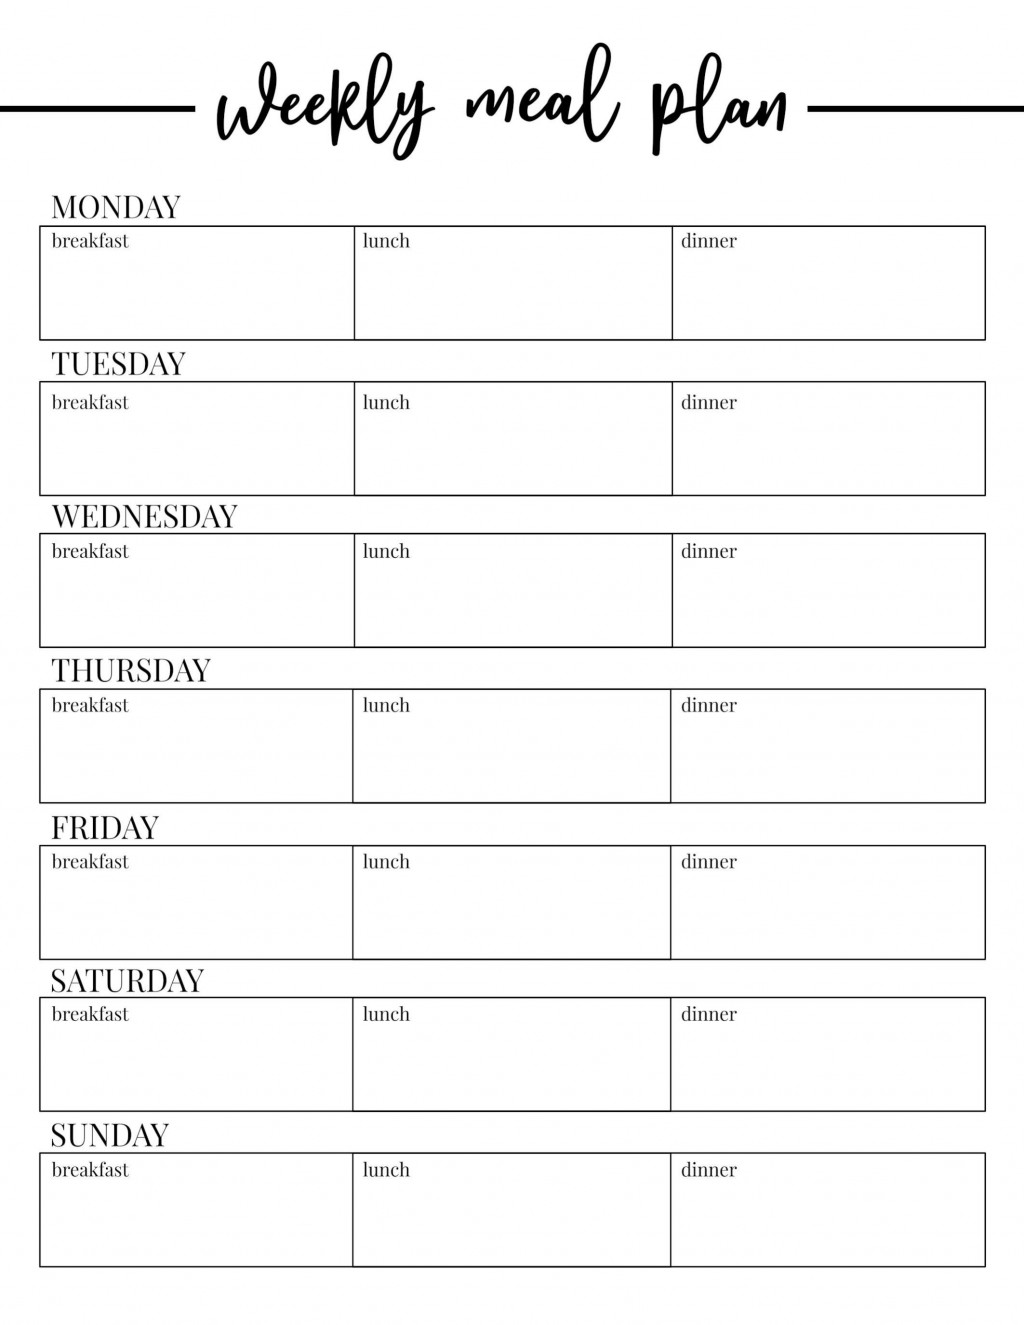 000 Staggering Weekly Eating Plan Template High Resolution  Food Planner Excel Meal DownloadLarge